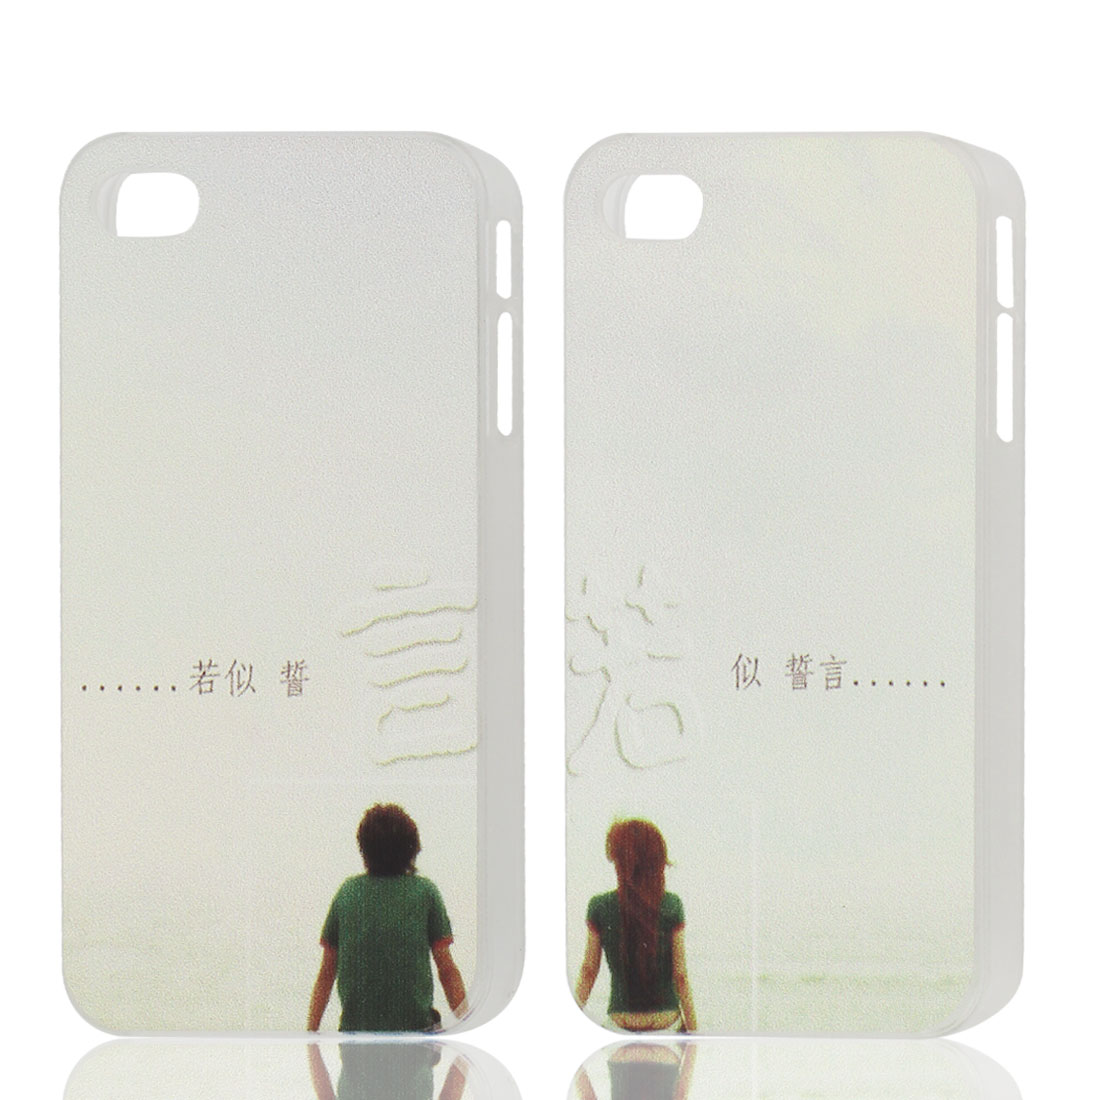 Pair Couple Boy Girl Hard Back Case Cover Protector White for Apple iPhone 4 4th